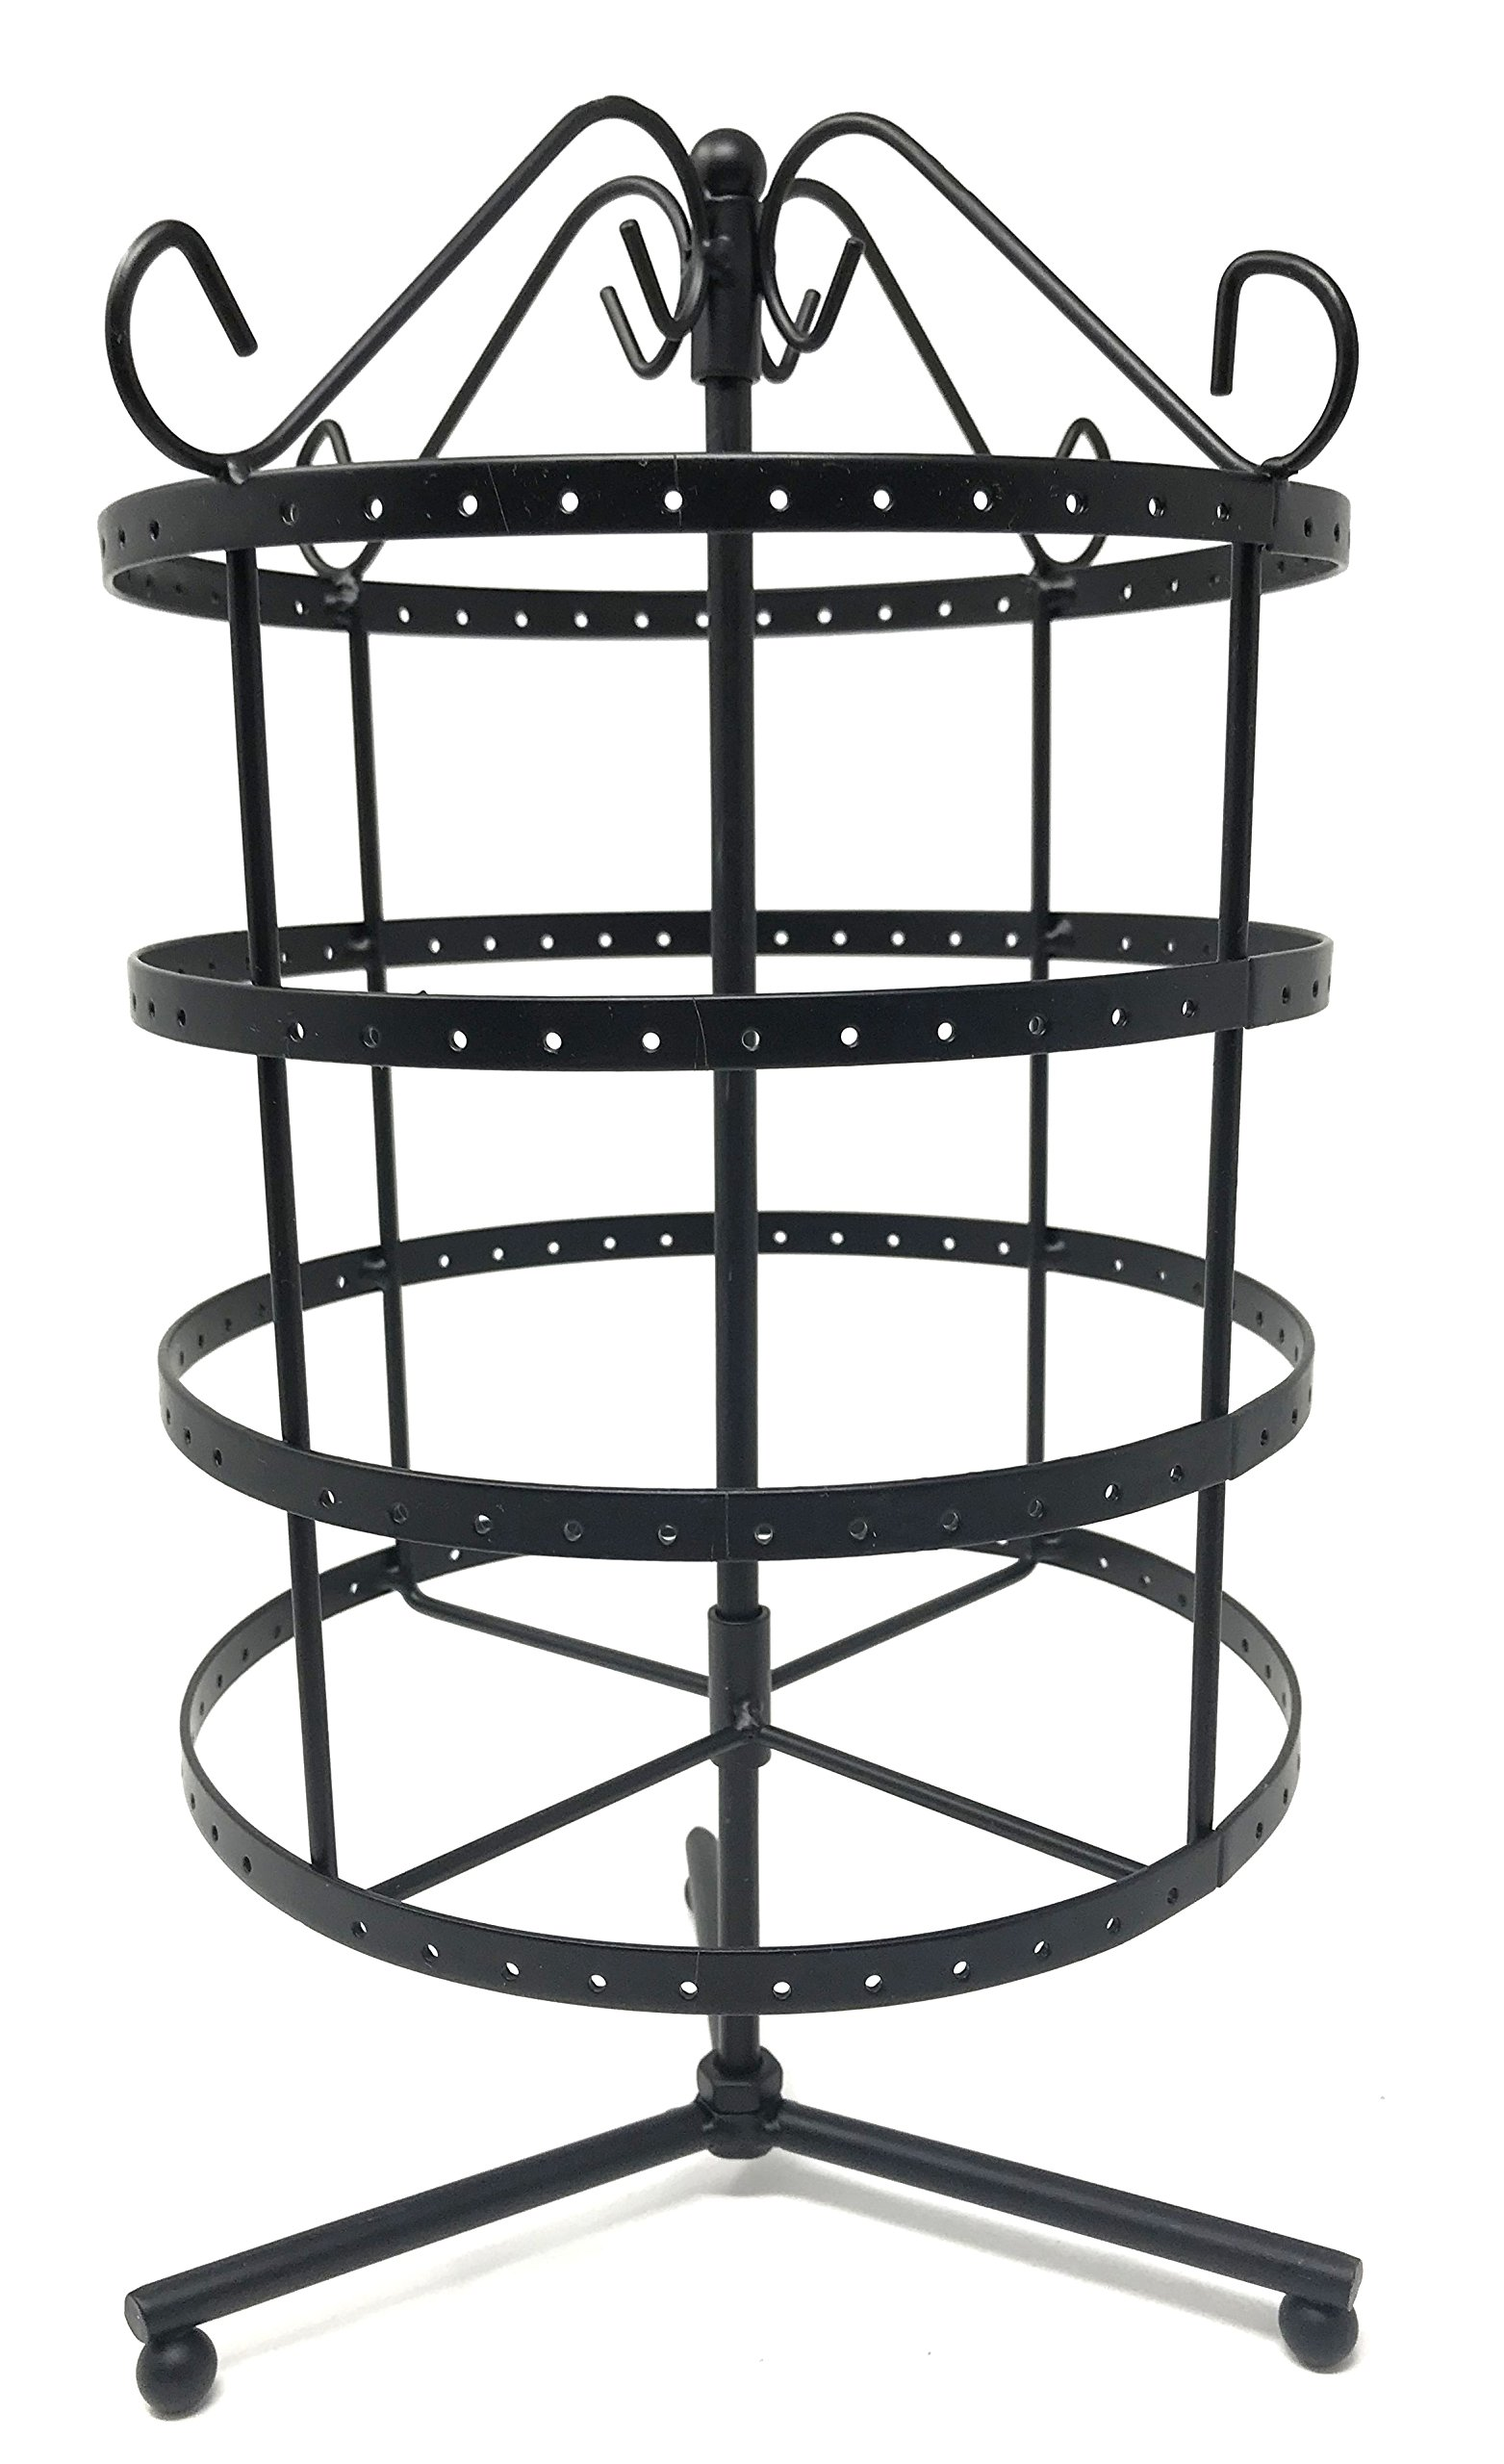 4 Tiers Black Rotating 92 pairs Earring Holder ~Necklace Organizer Stand ~ Jewelry Stand Display Rack Towers